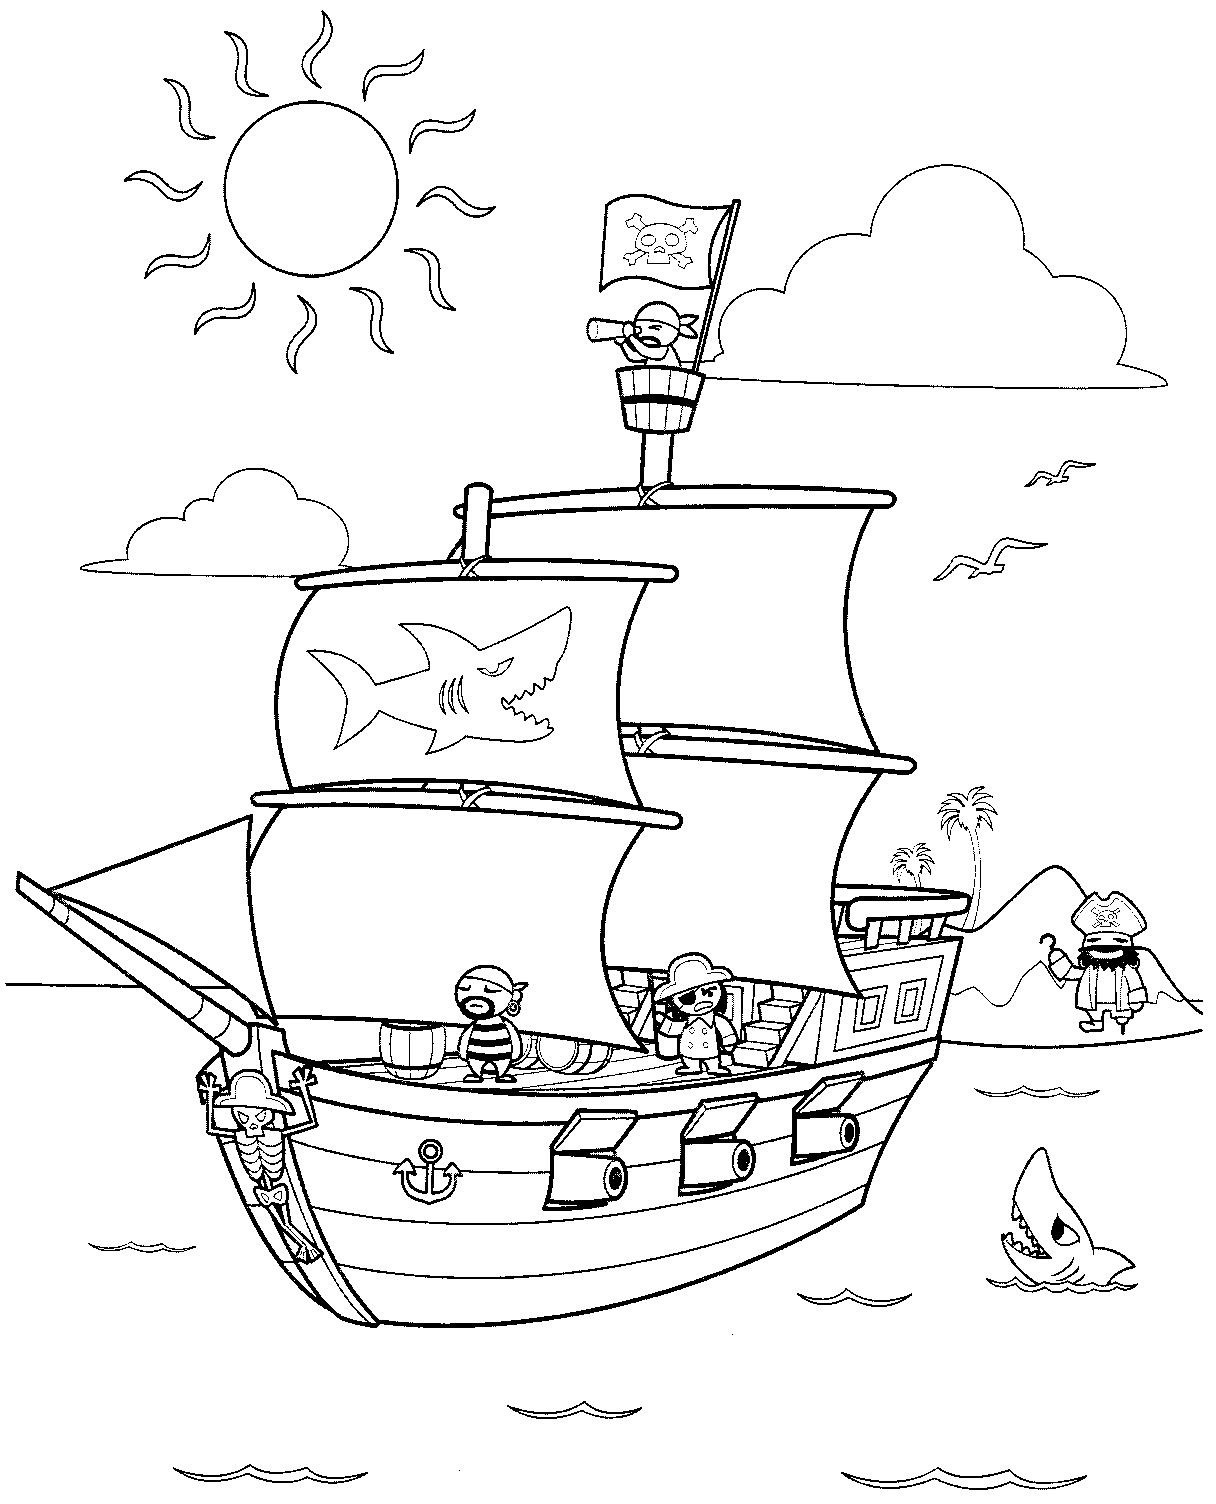 pirate coloring pages for preschool simple pirate ship coloring pages for preschool coloring for pages pirate preschool